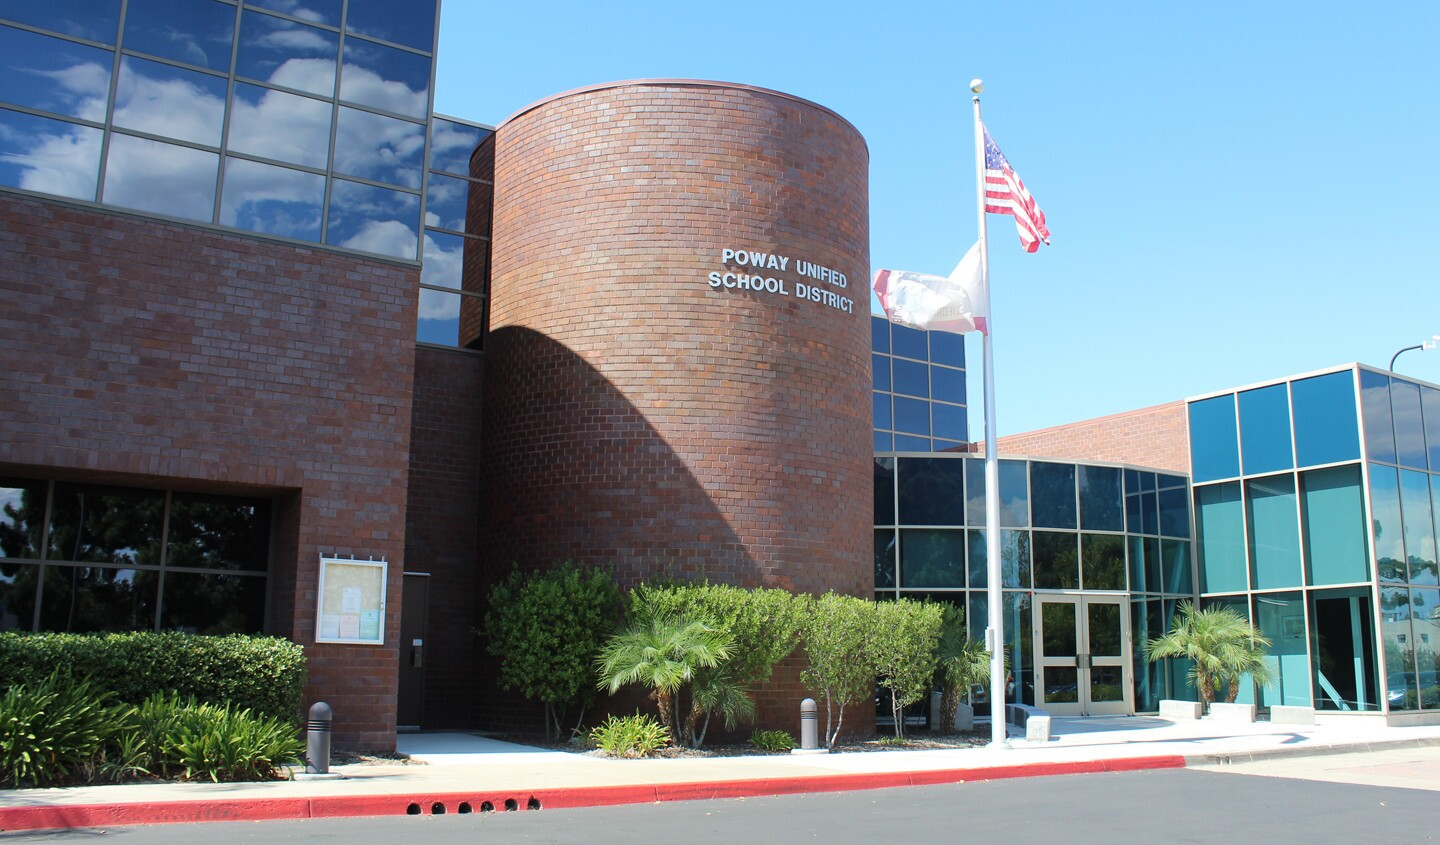 Poway Unified School District Calendar 2021 Poway Unified has tough financial challenges, decisions ahead